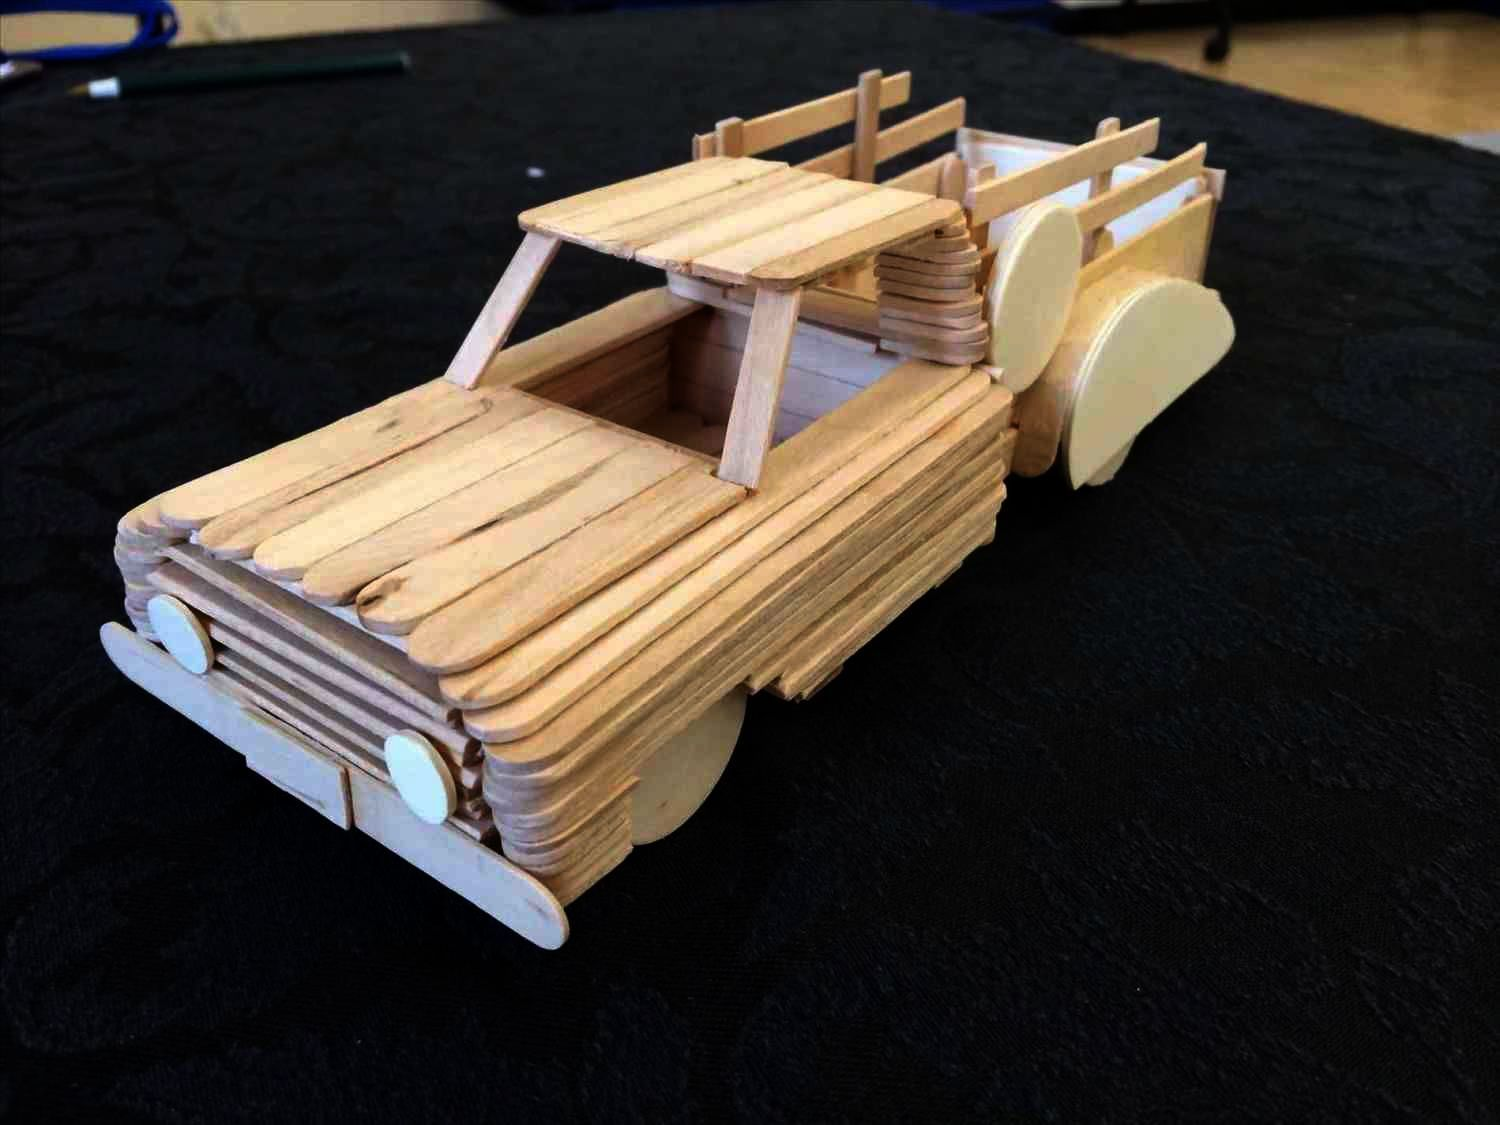 43+ Arts and crafts for adults with disabilities ideas